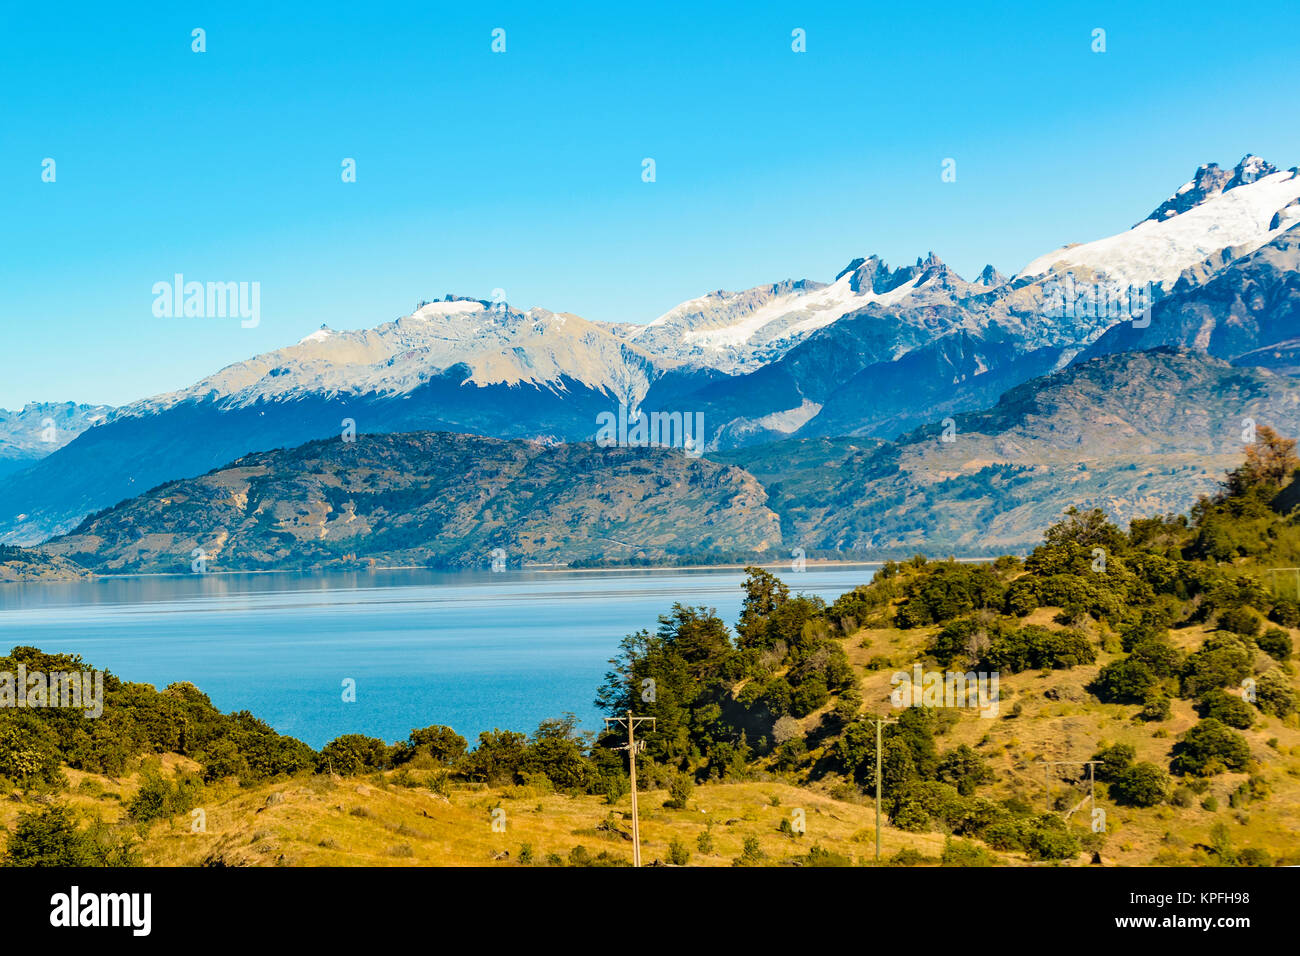 Andean Lake District Chile Stock Photos & Andean Lake ...